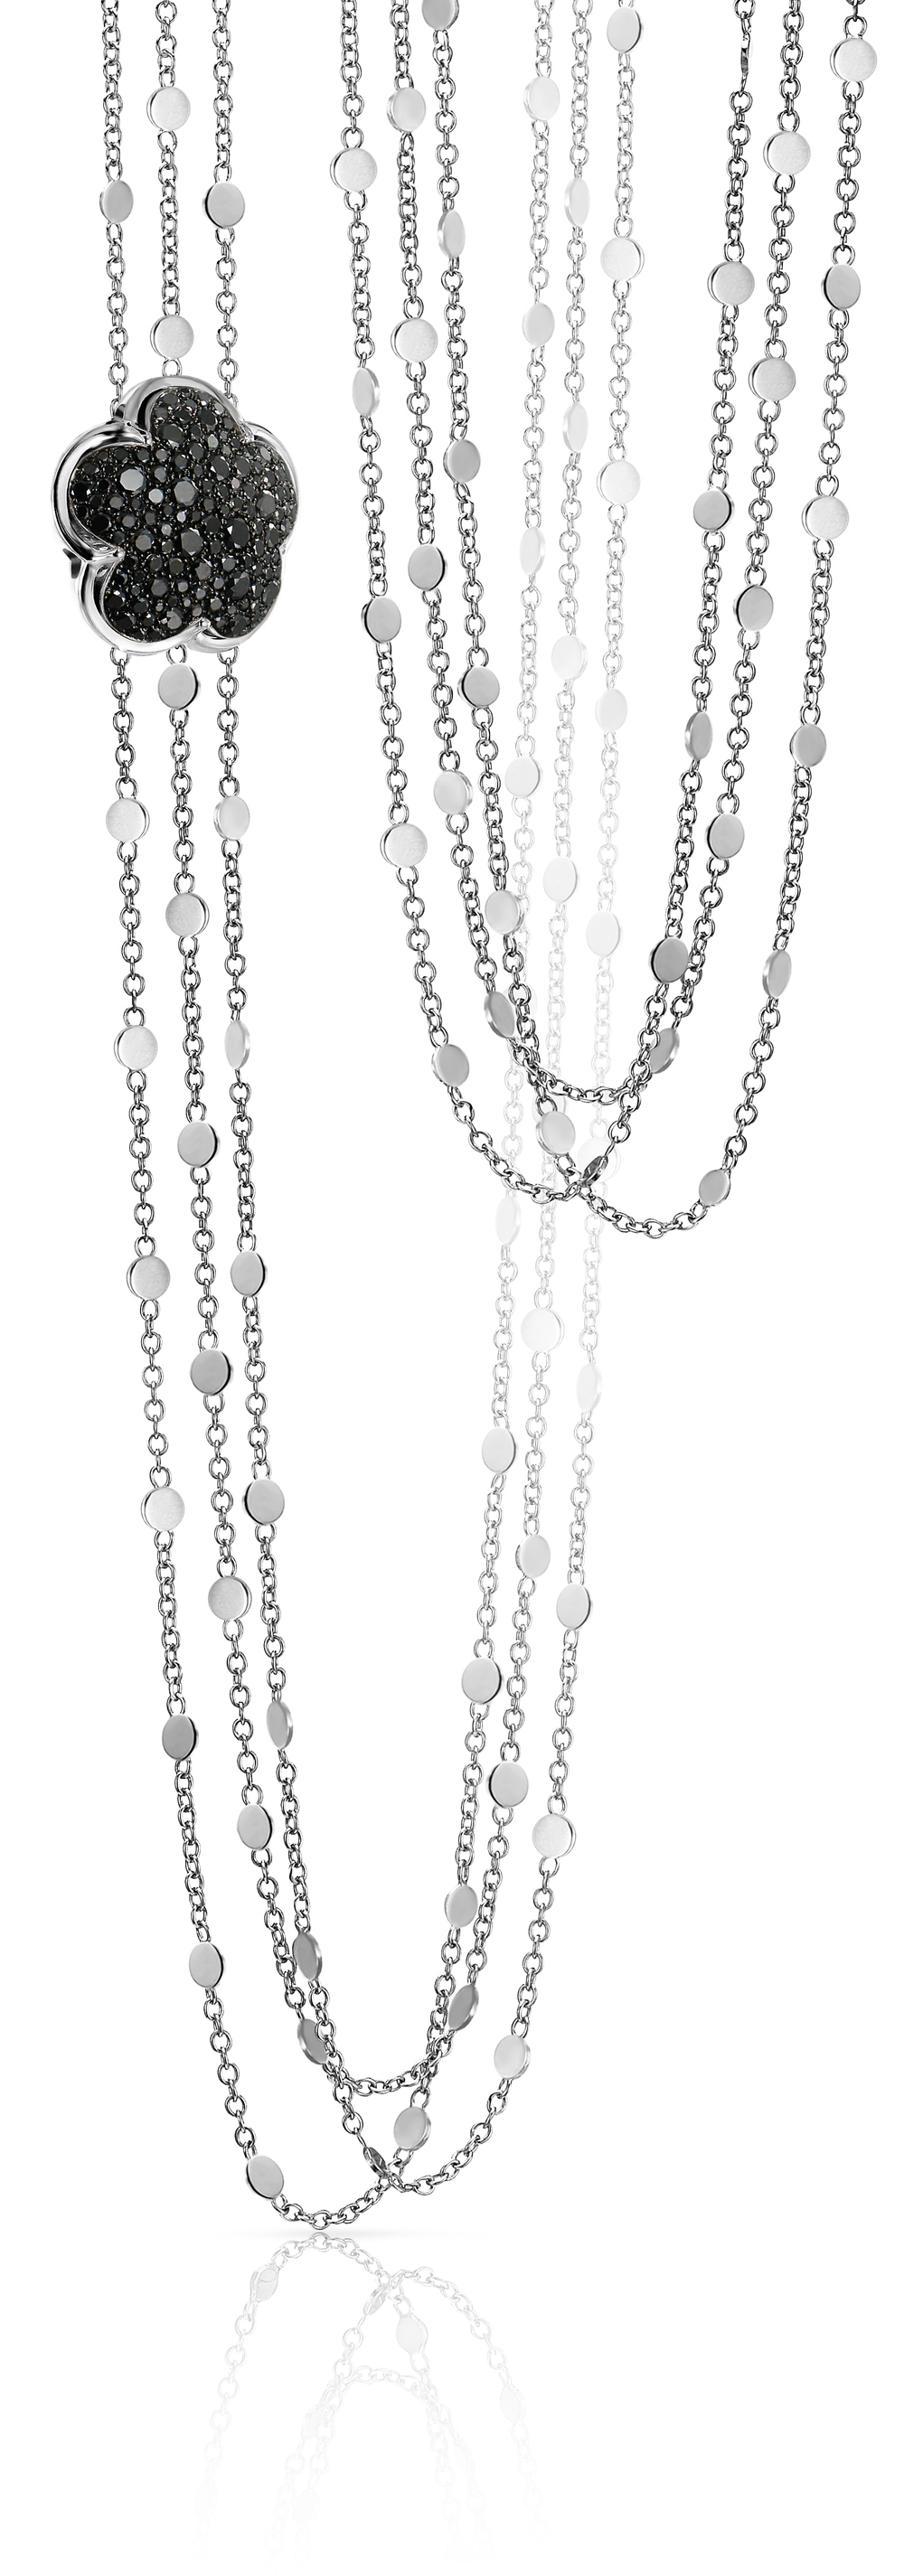 Bon Ton-neklace_black diamonds.jpg